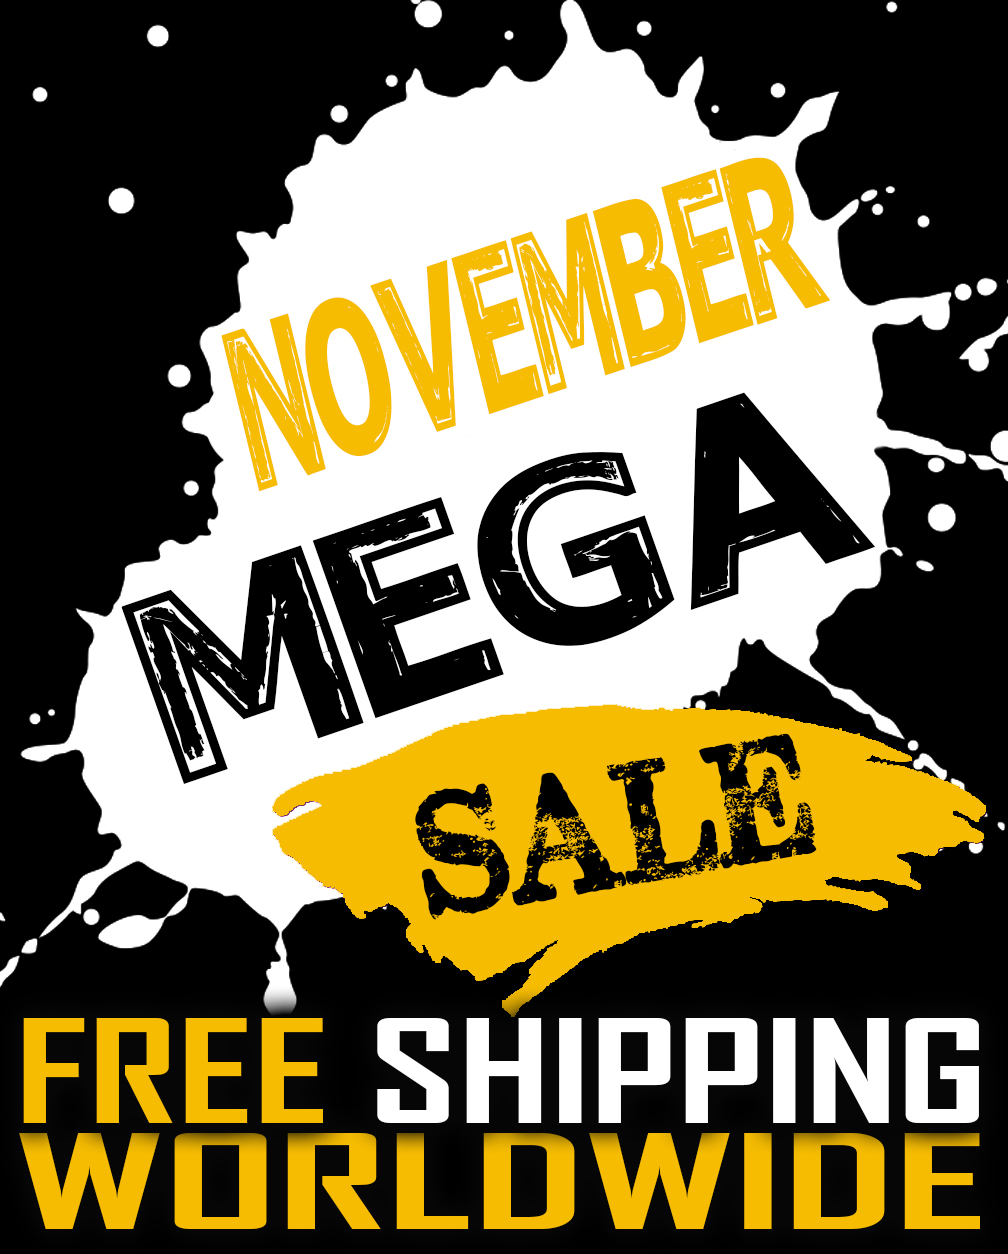 november-mega-sale-free-shipping.jpg